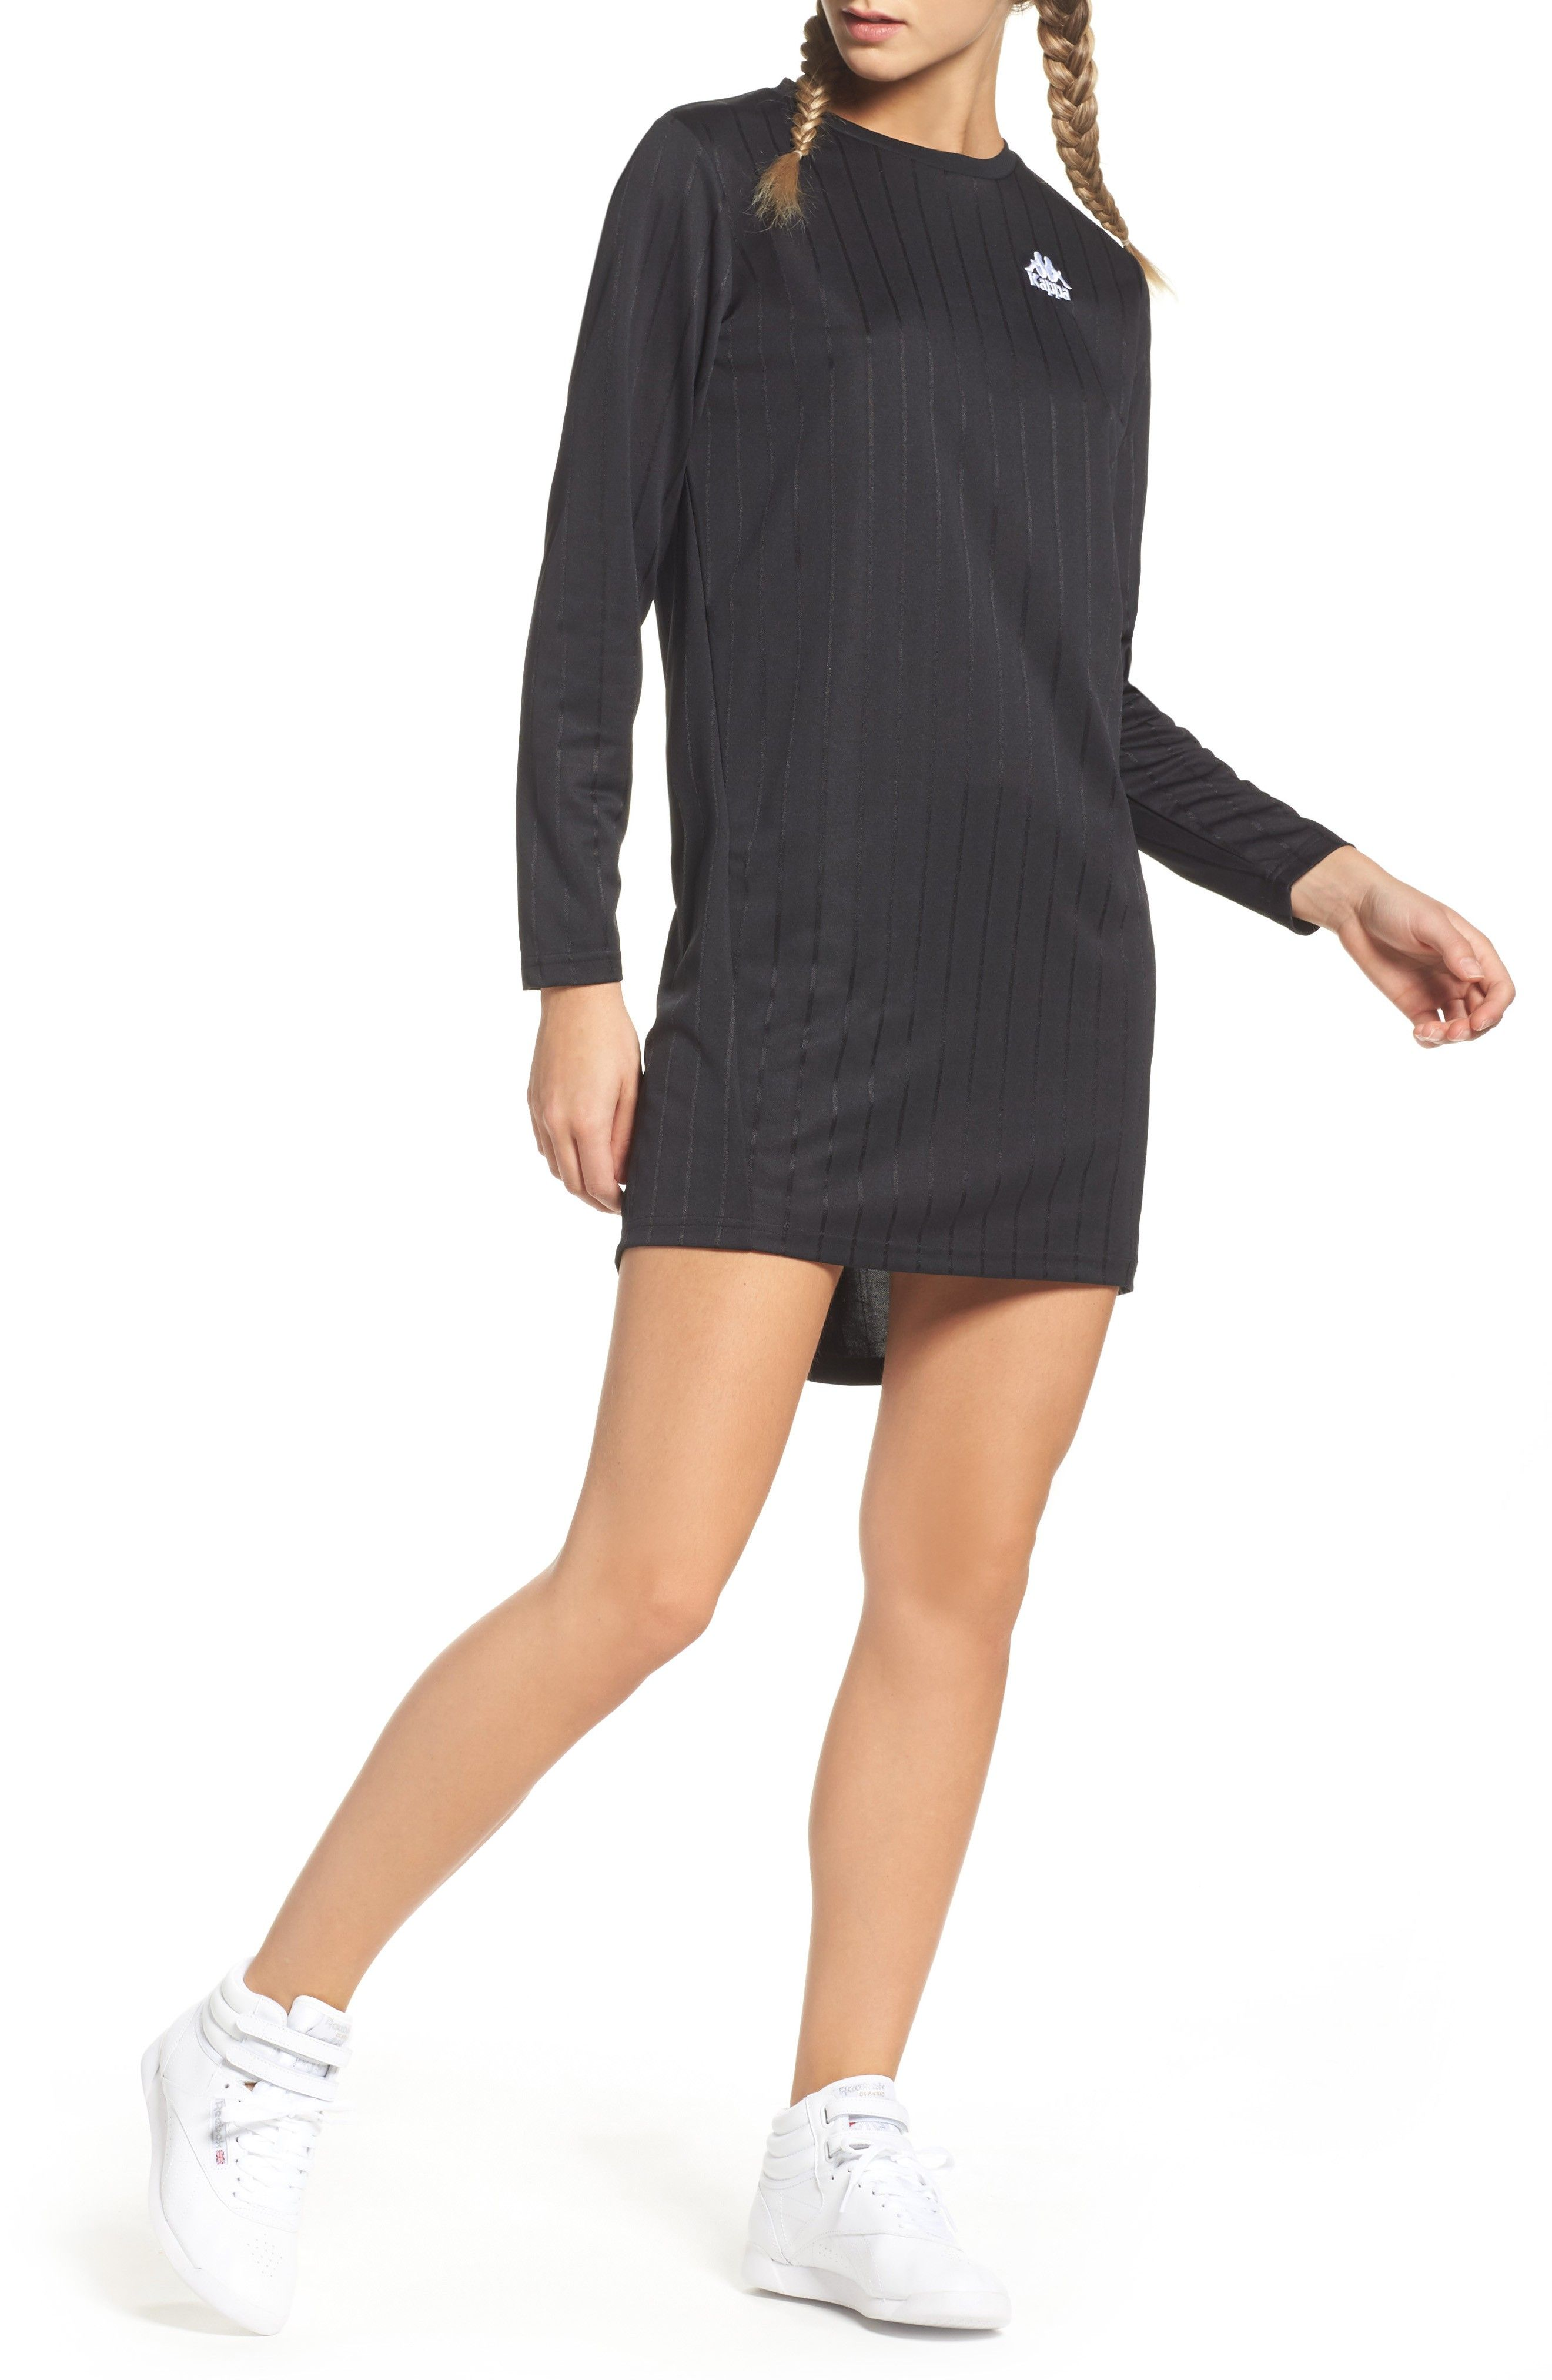 Buy KAPPA Authentic Rippon T-Shirt Dress online. New offer for KAPPA  Authentic Rippon T-Shirt Dress from best store online